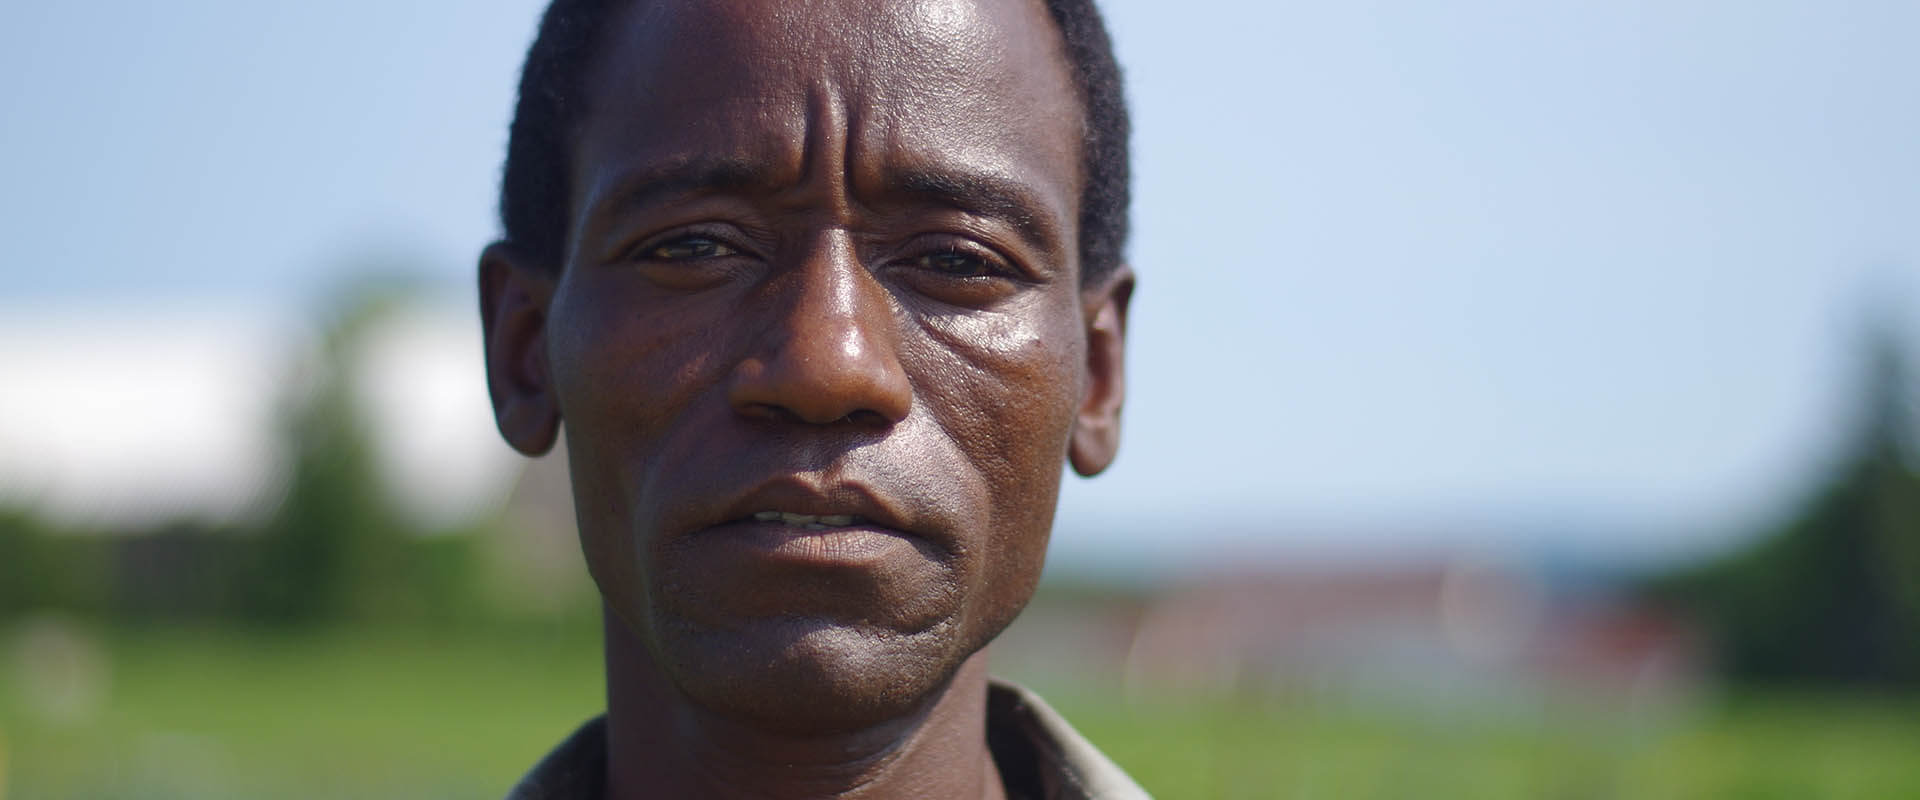 A Somali Bantu man out in the fields